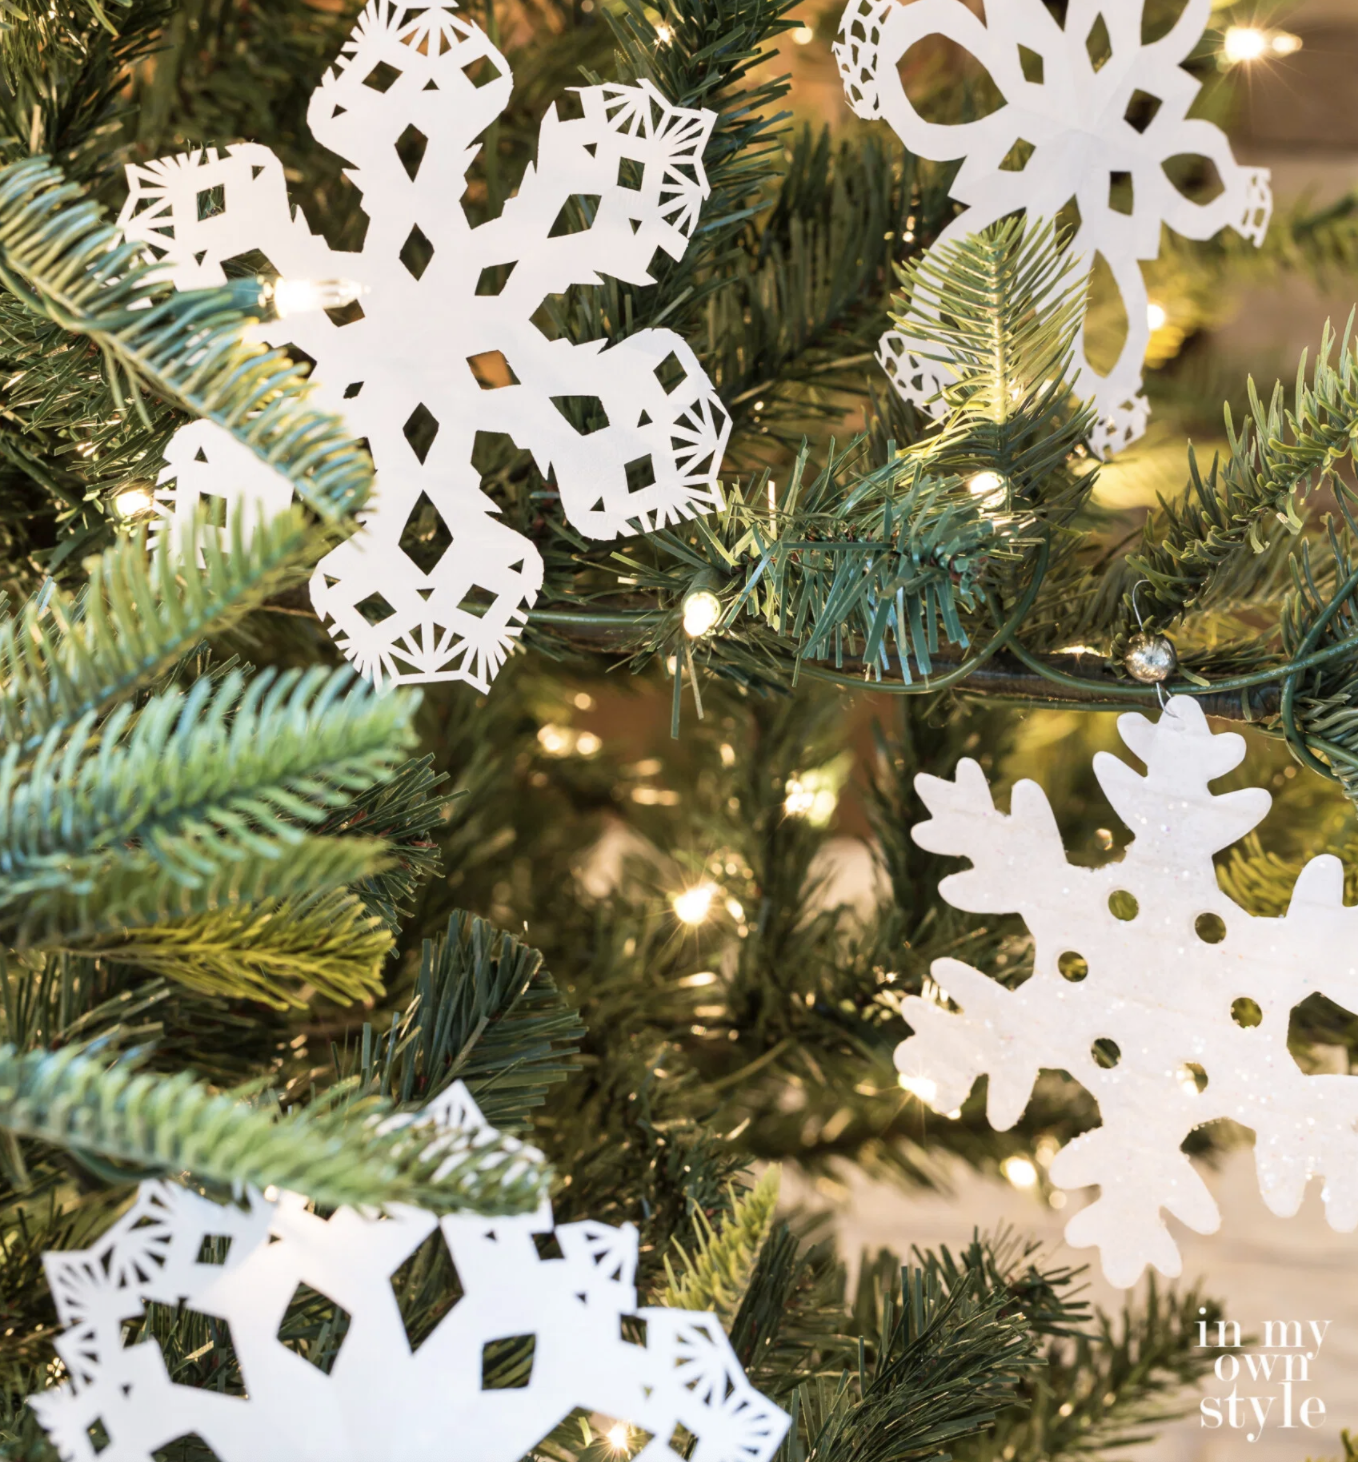 Unique DIY Ornaments - the tree is so pretty covered in these paper snowflakes